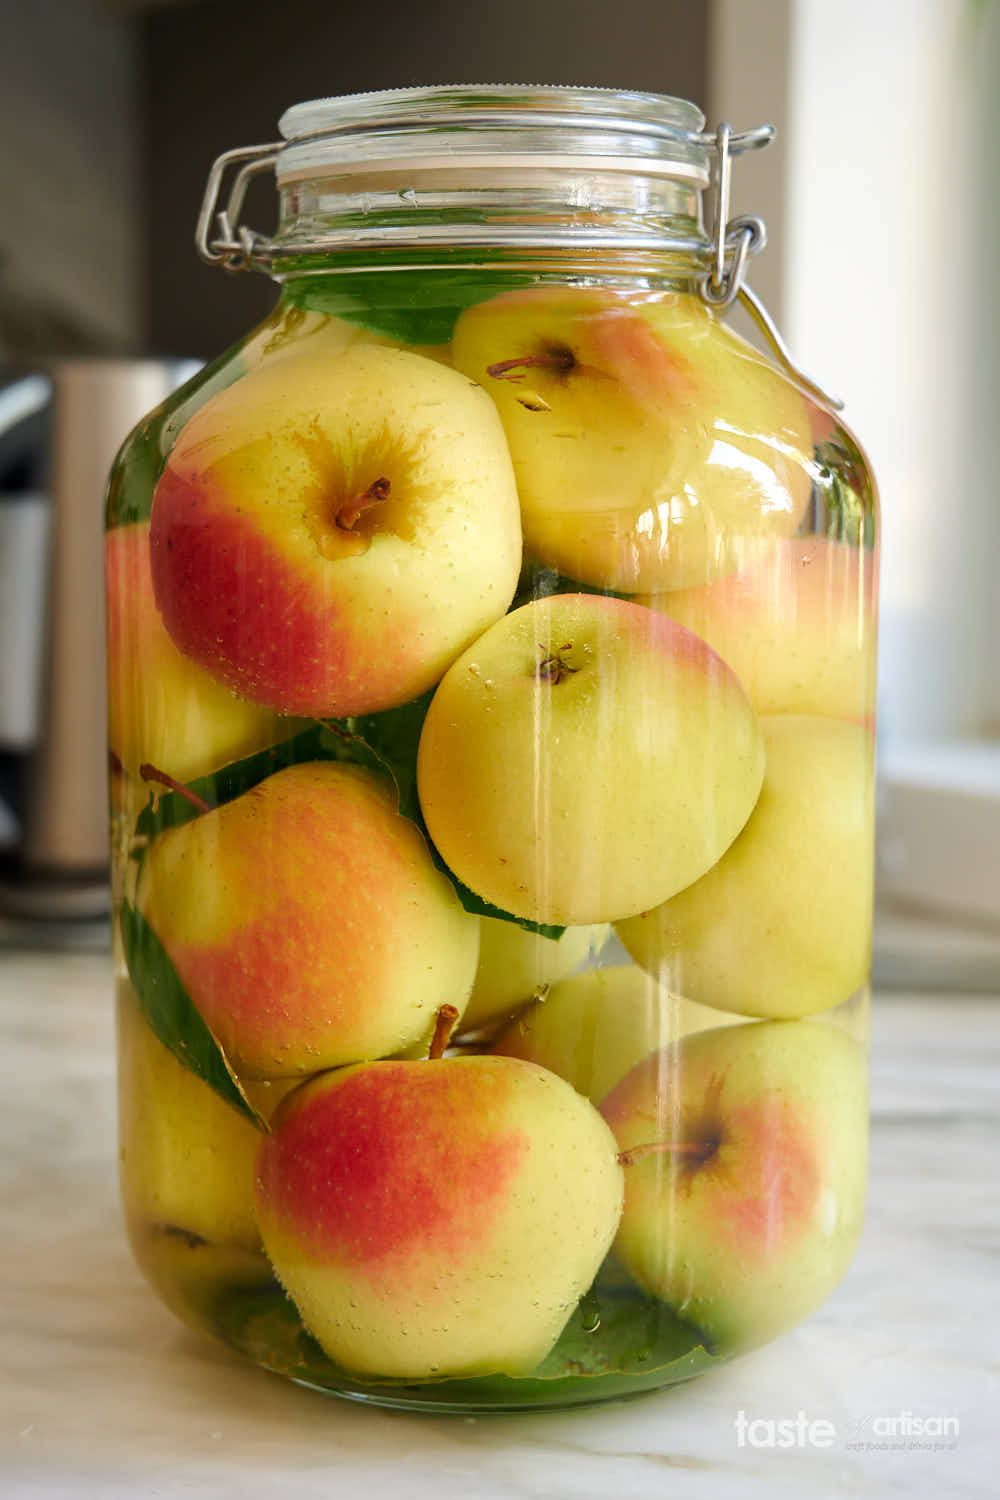 Apples fermenting in a large jar.